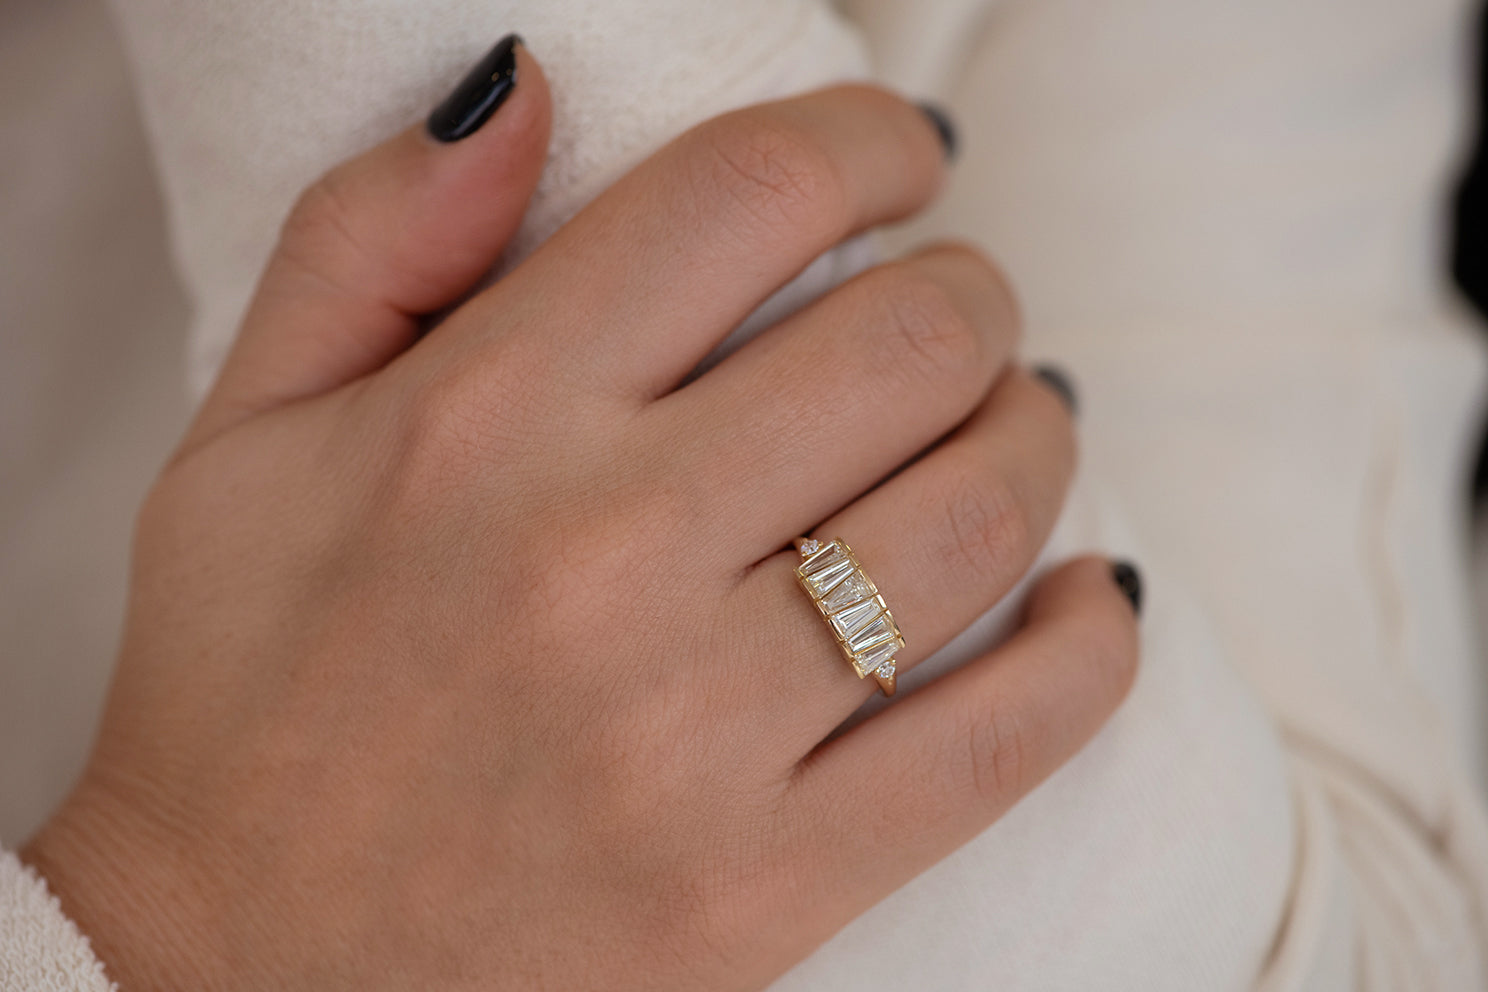 OOAK Tapered Baguette Diamond Lineup Ring Detailed Shot on Hand